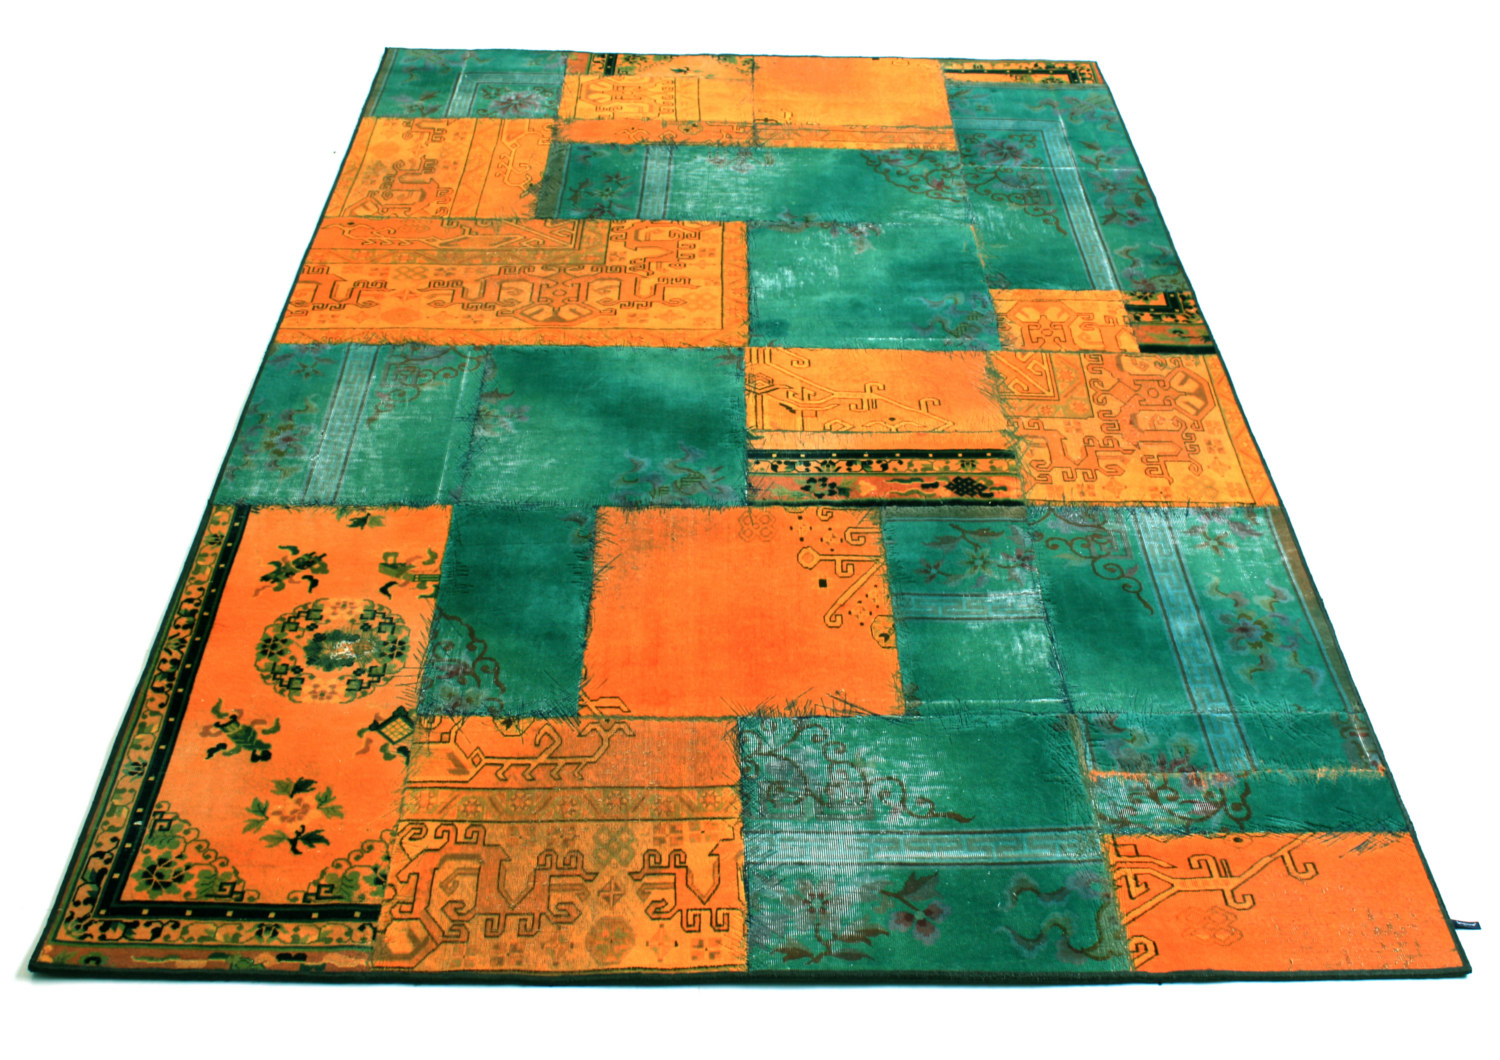 9749_THE MASHUP Collectors Edition_canari & turquoise_230x290_1